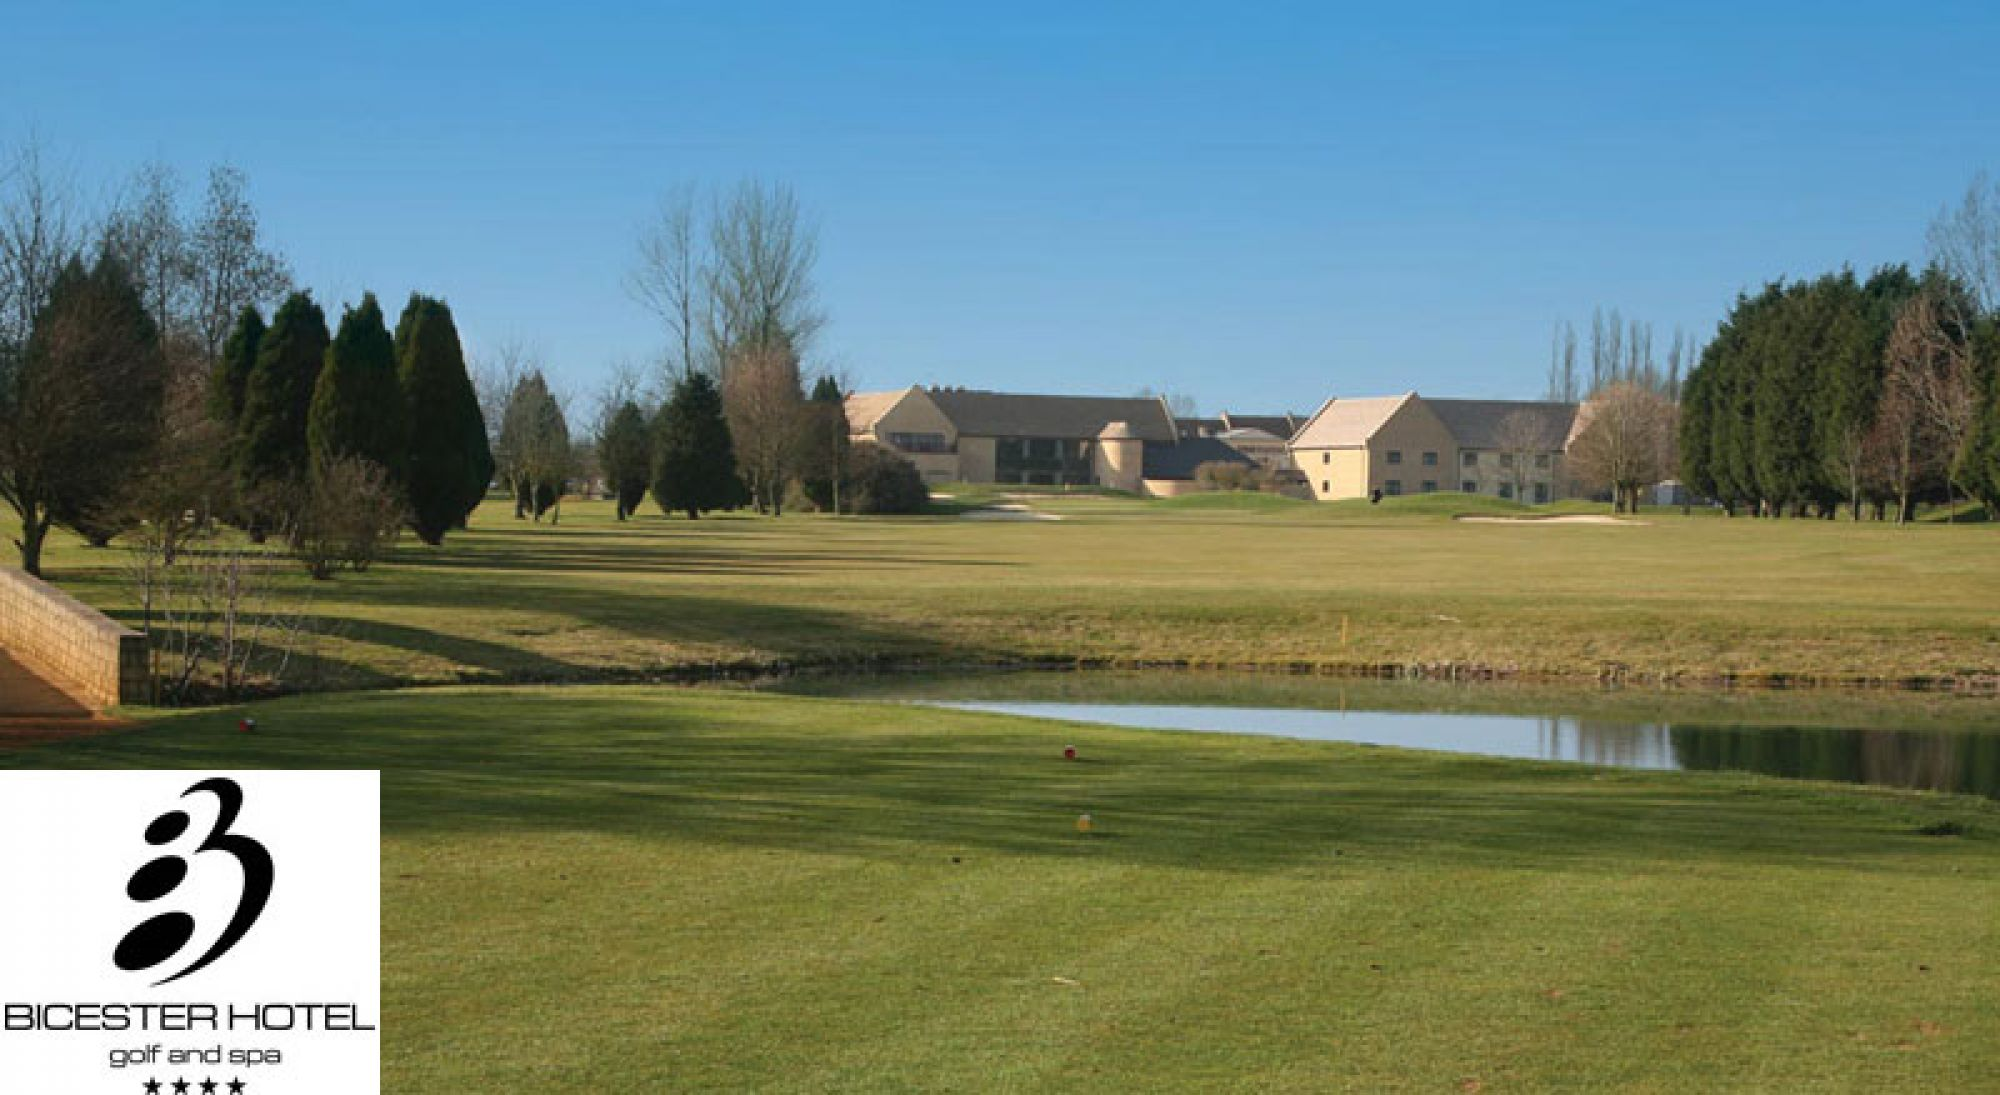 Bicester Golf Club has got among the finest golf course in Oxfordshire